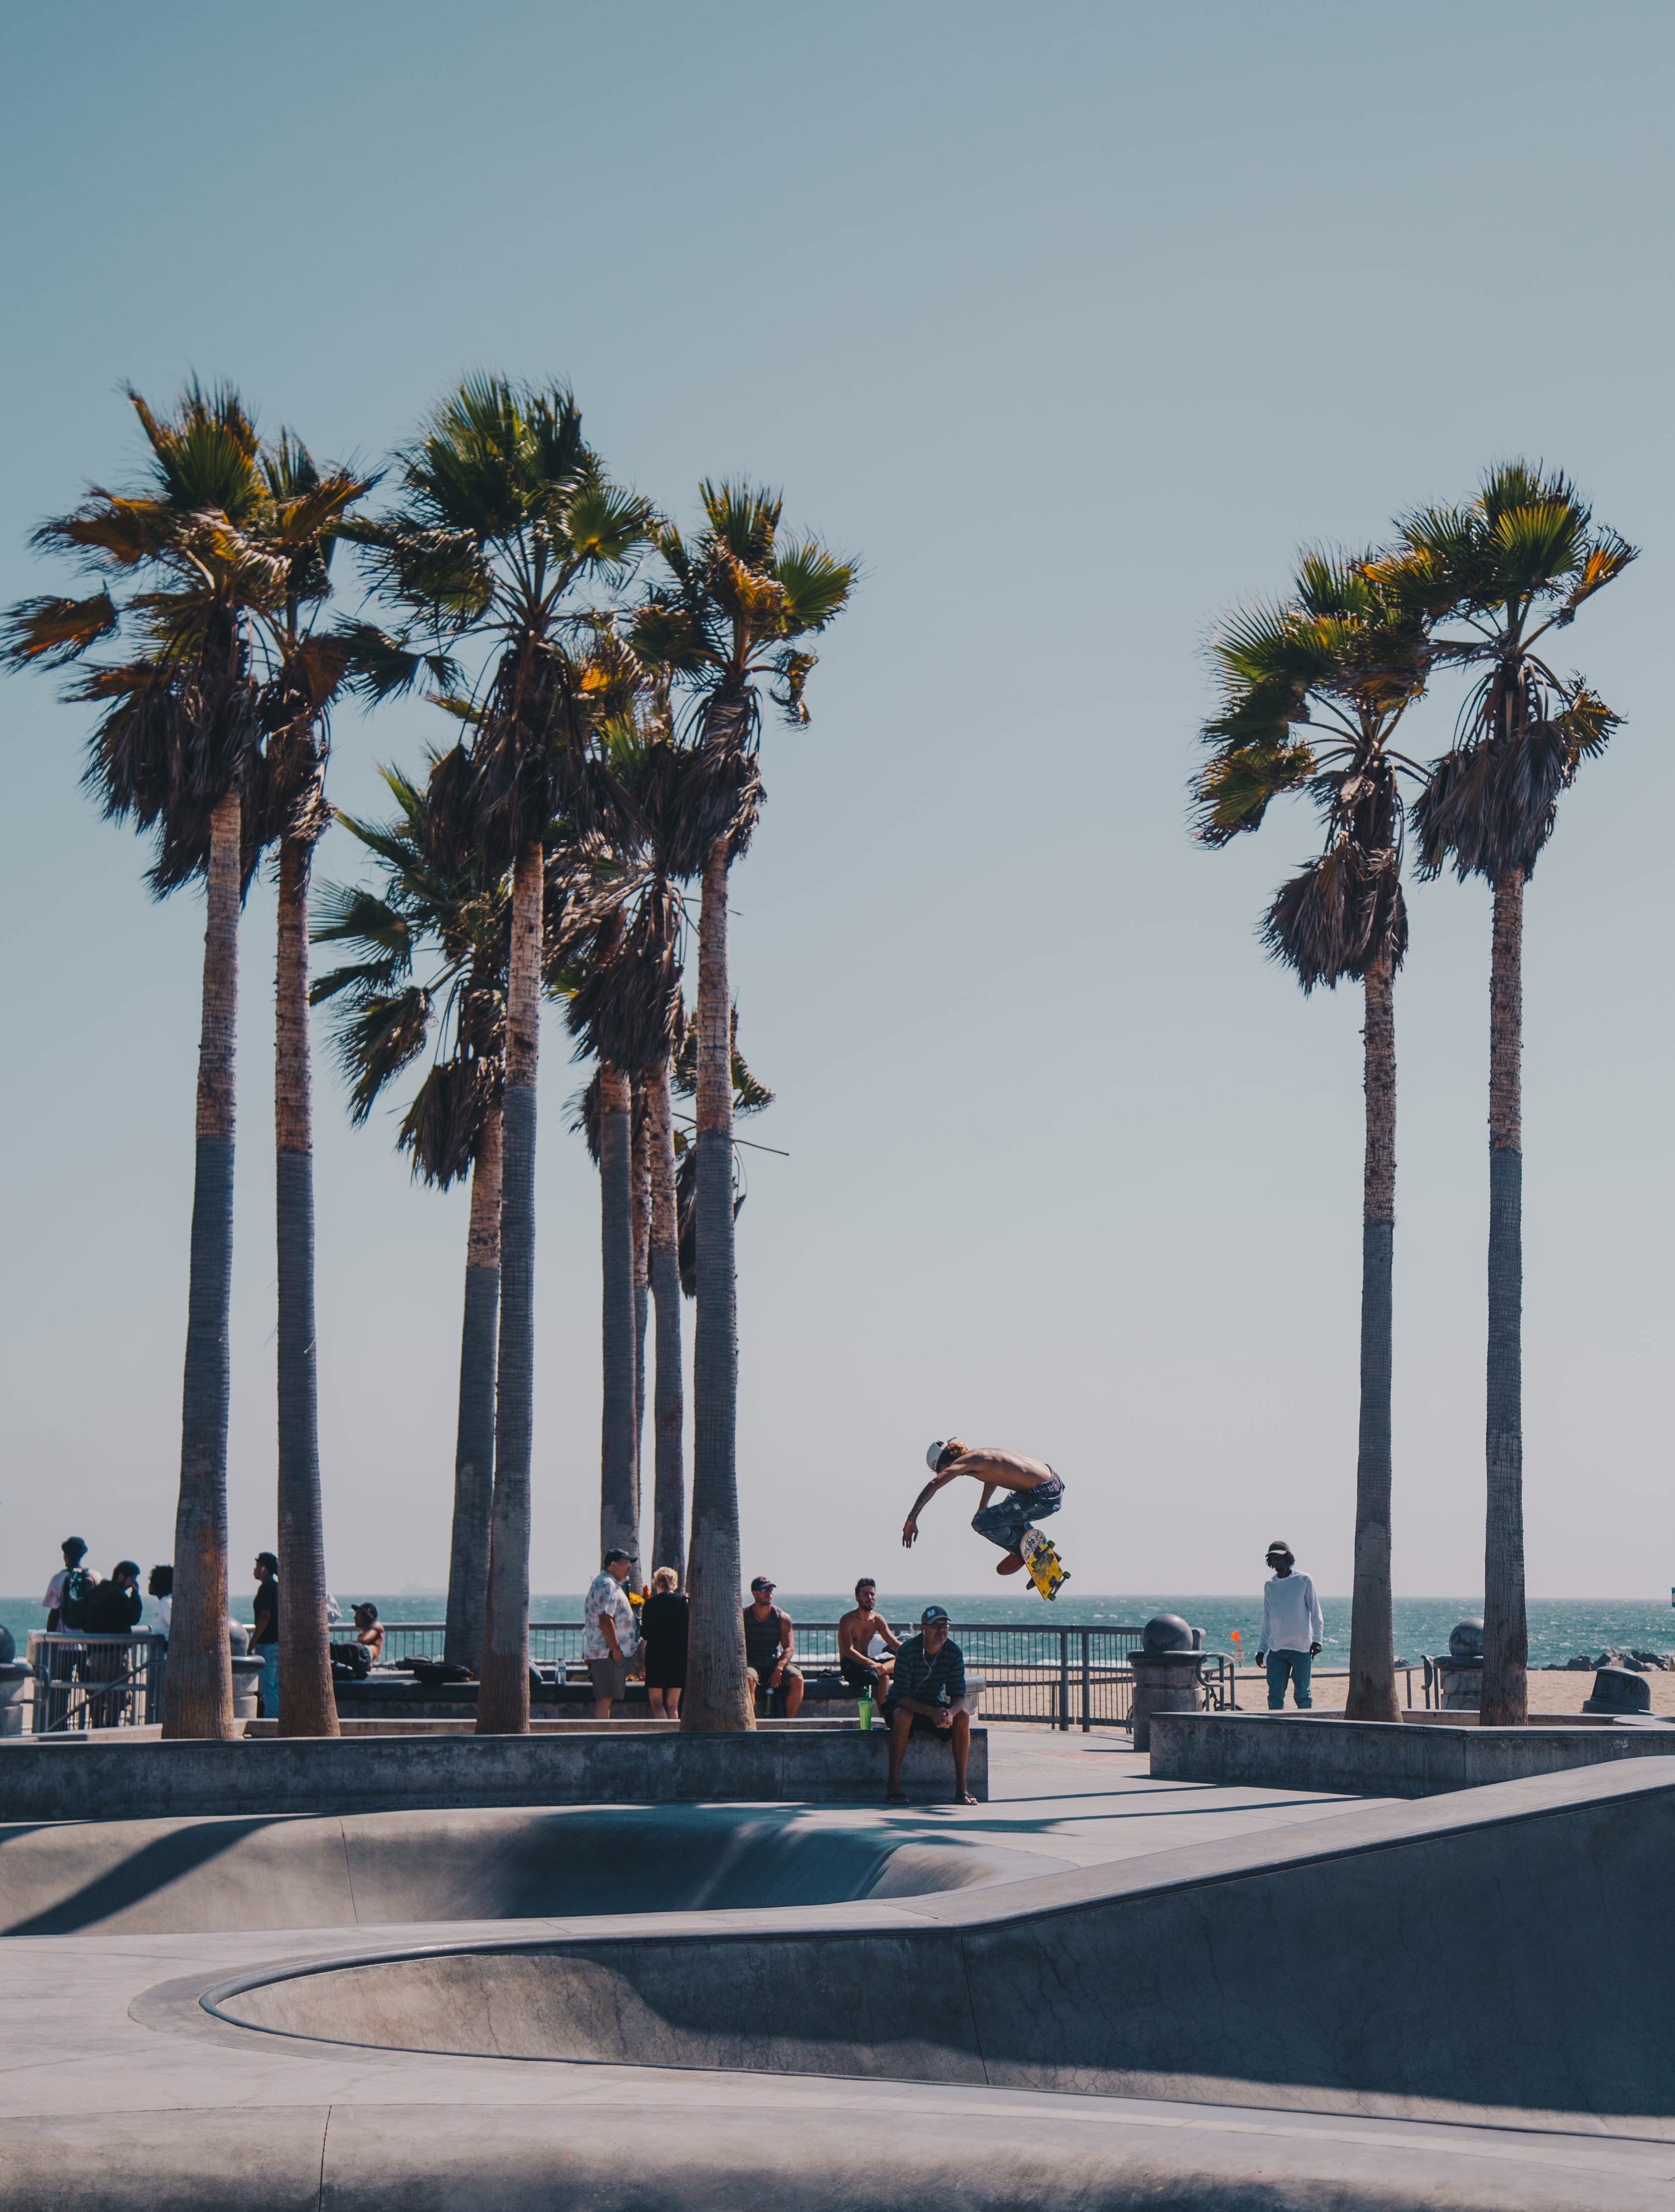 photo of man skateboarding on ramp